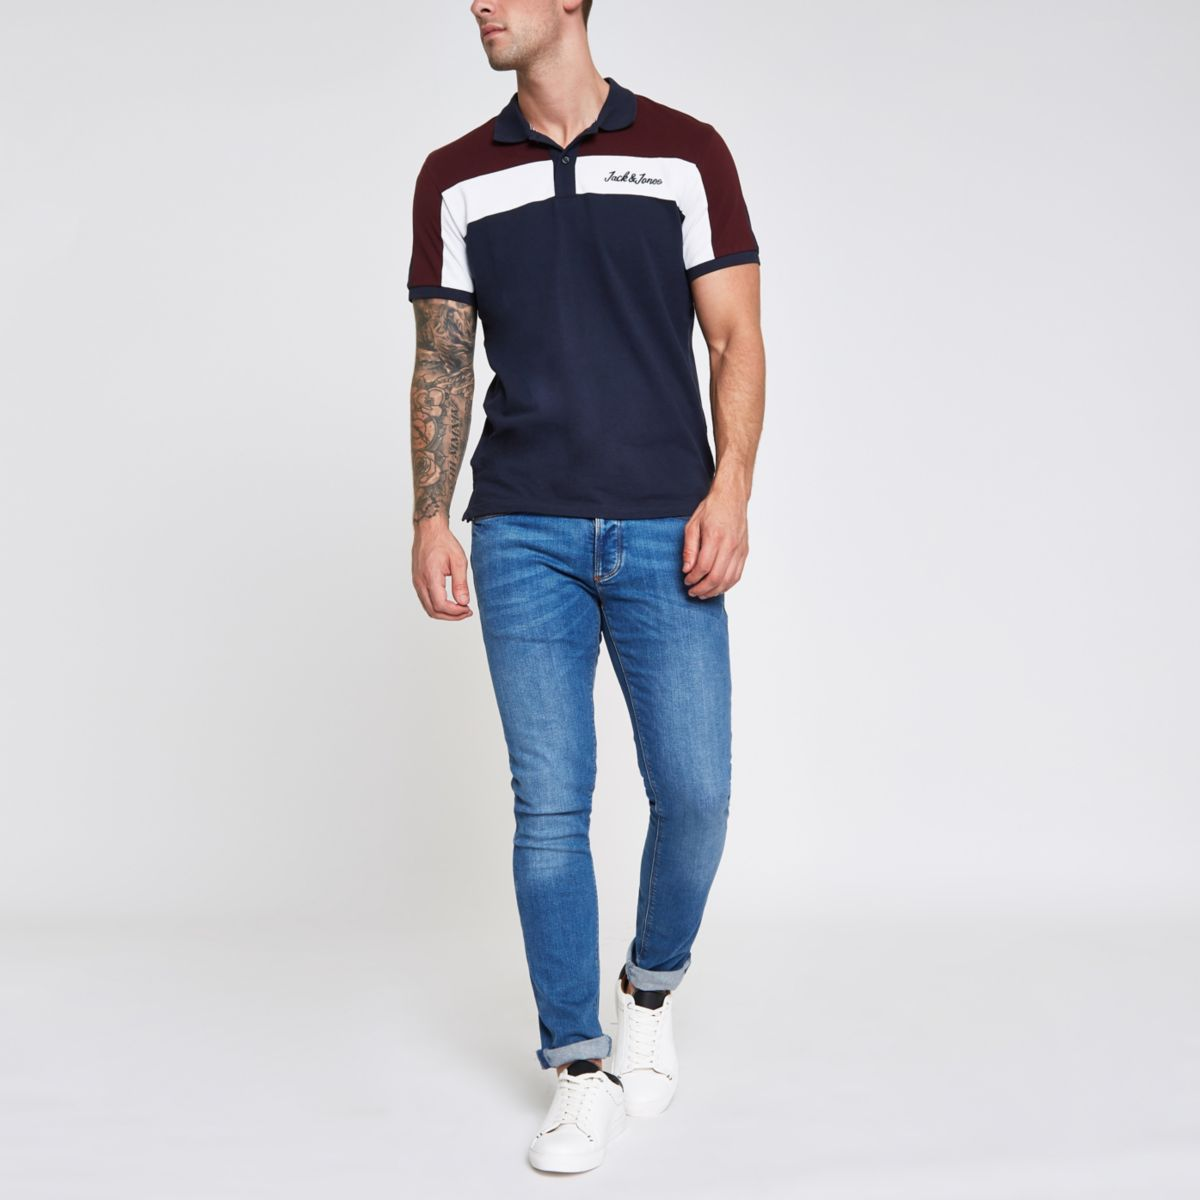 Jack & Jones navy color block polo shirt